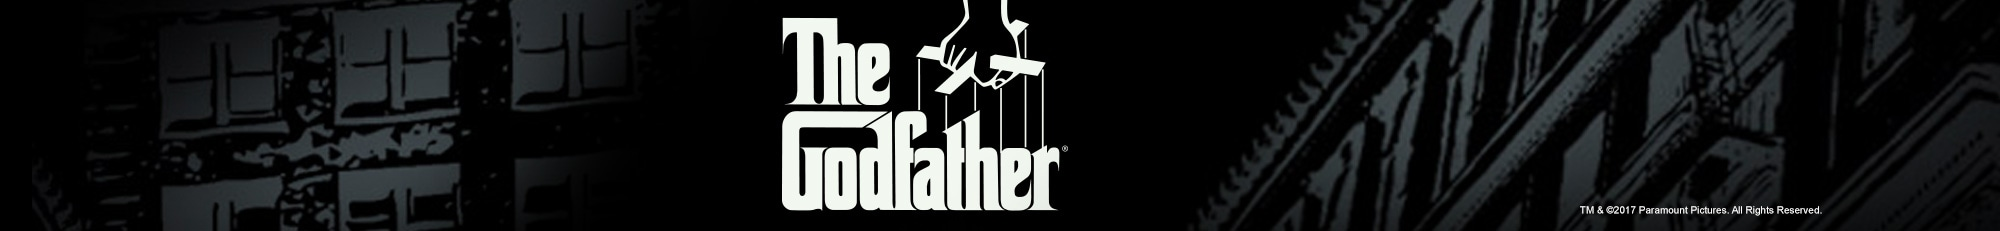 The Godfather Gifts